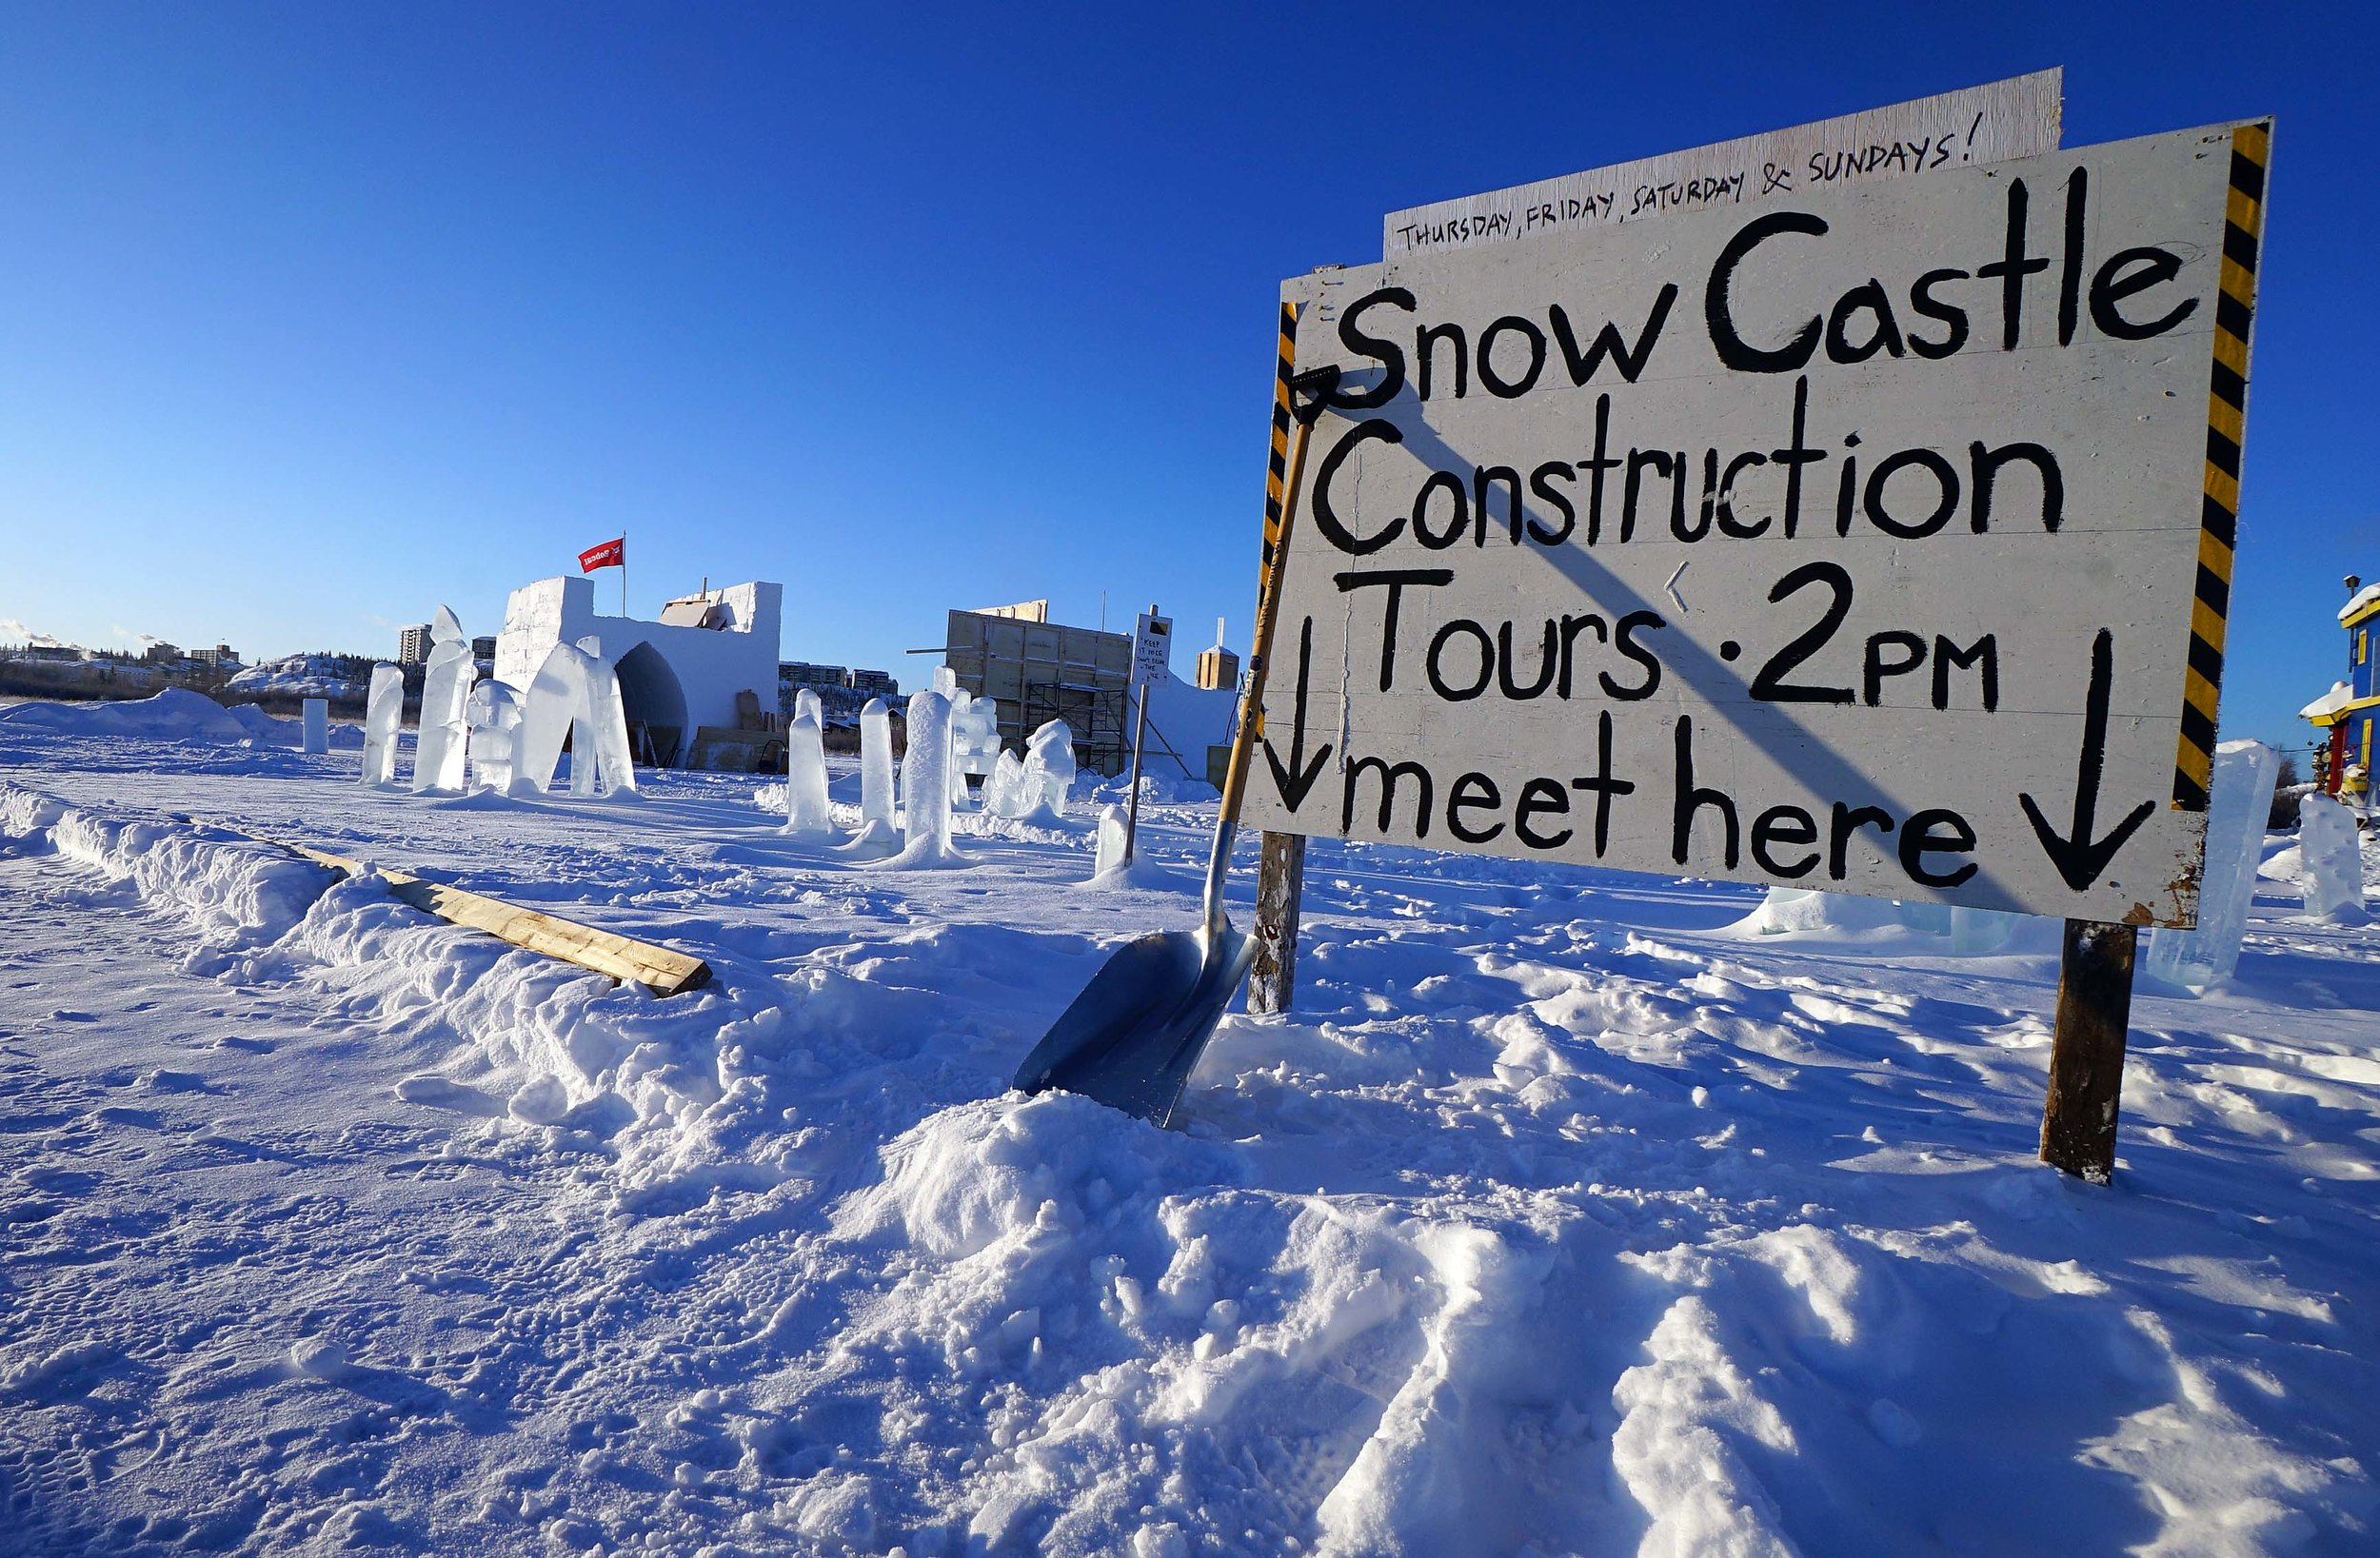 Snowking's Winter Festival introduces guided tours of castle construction